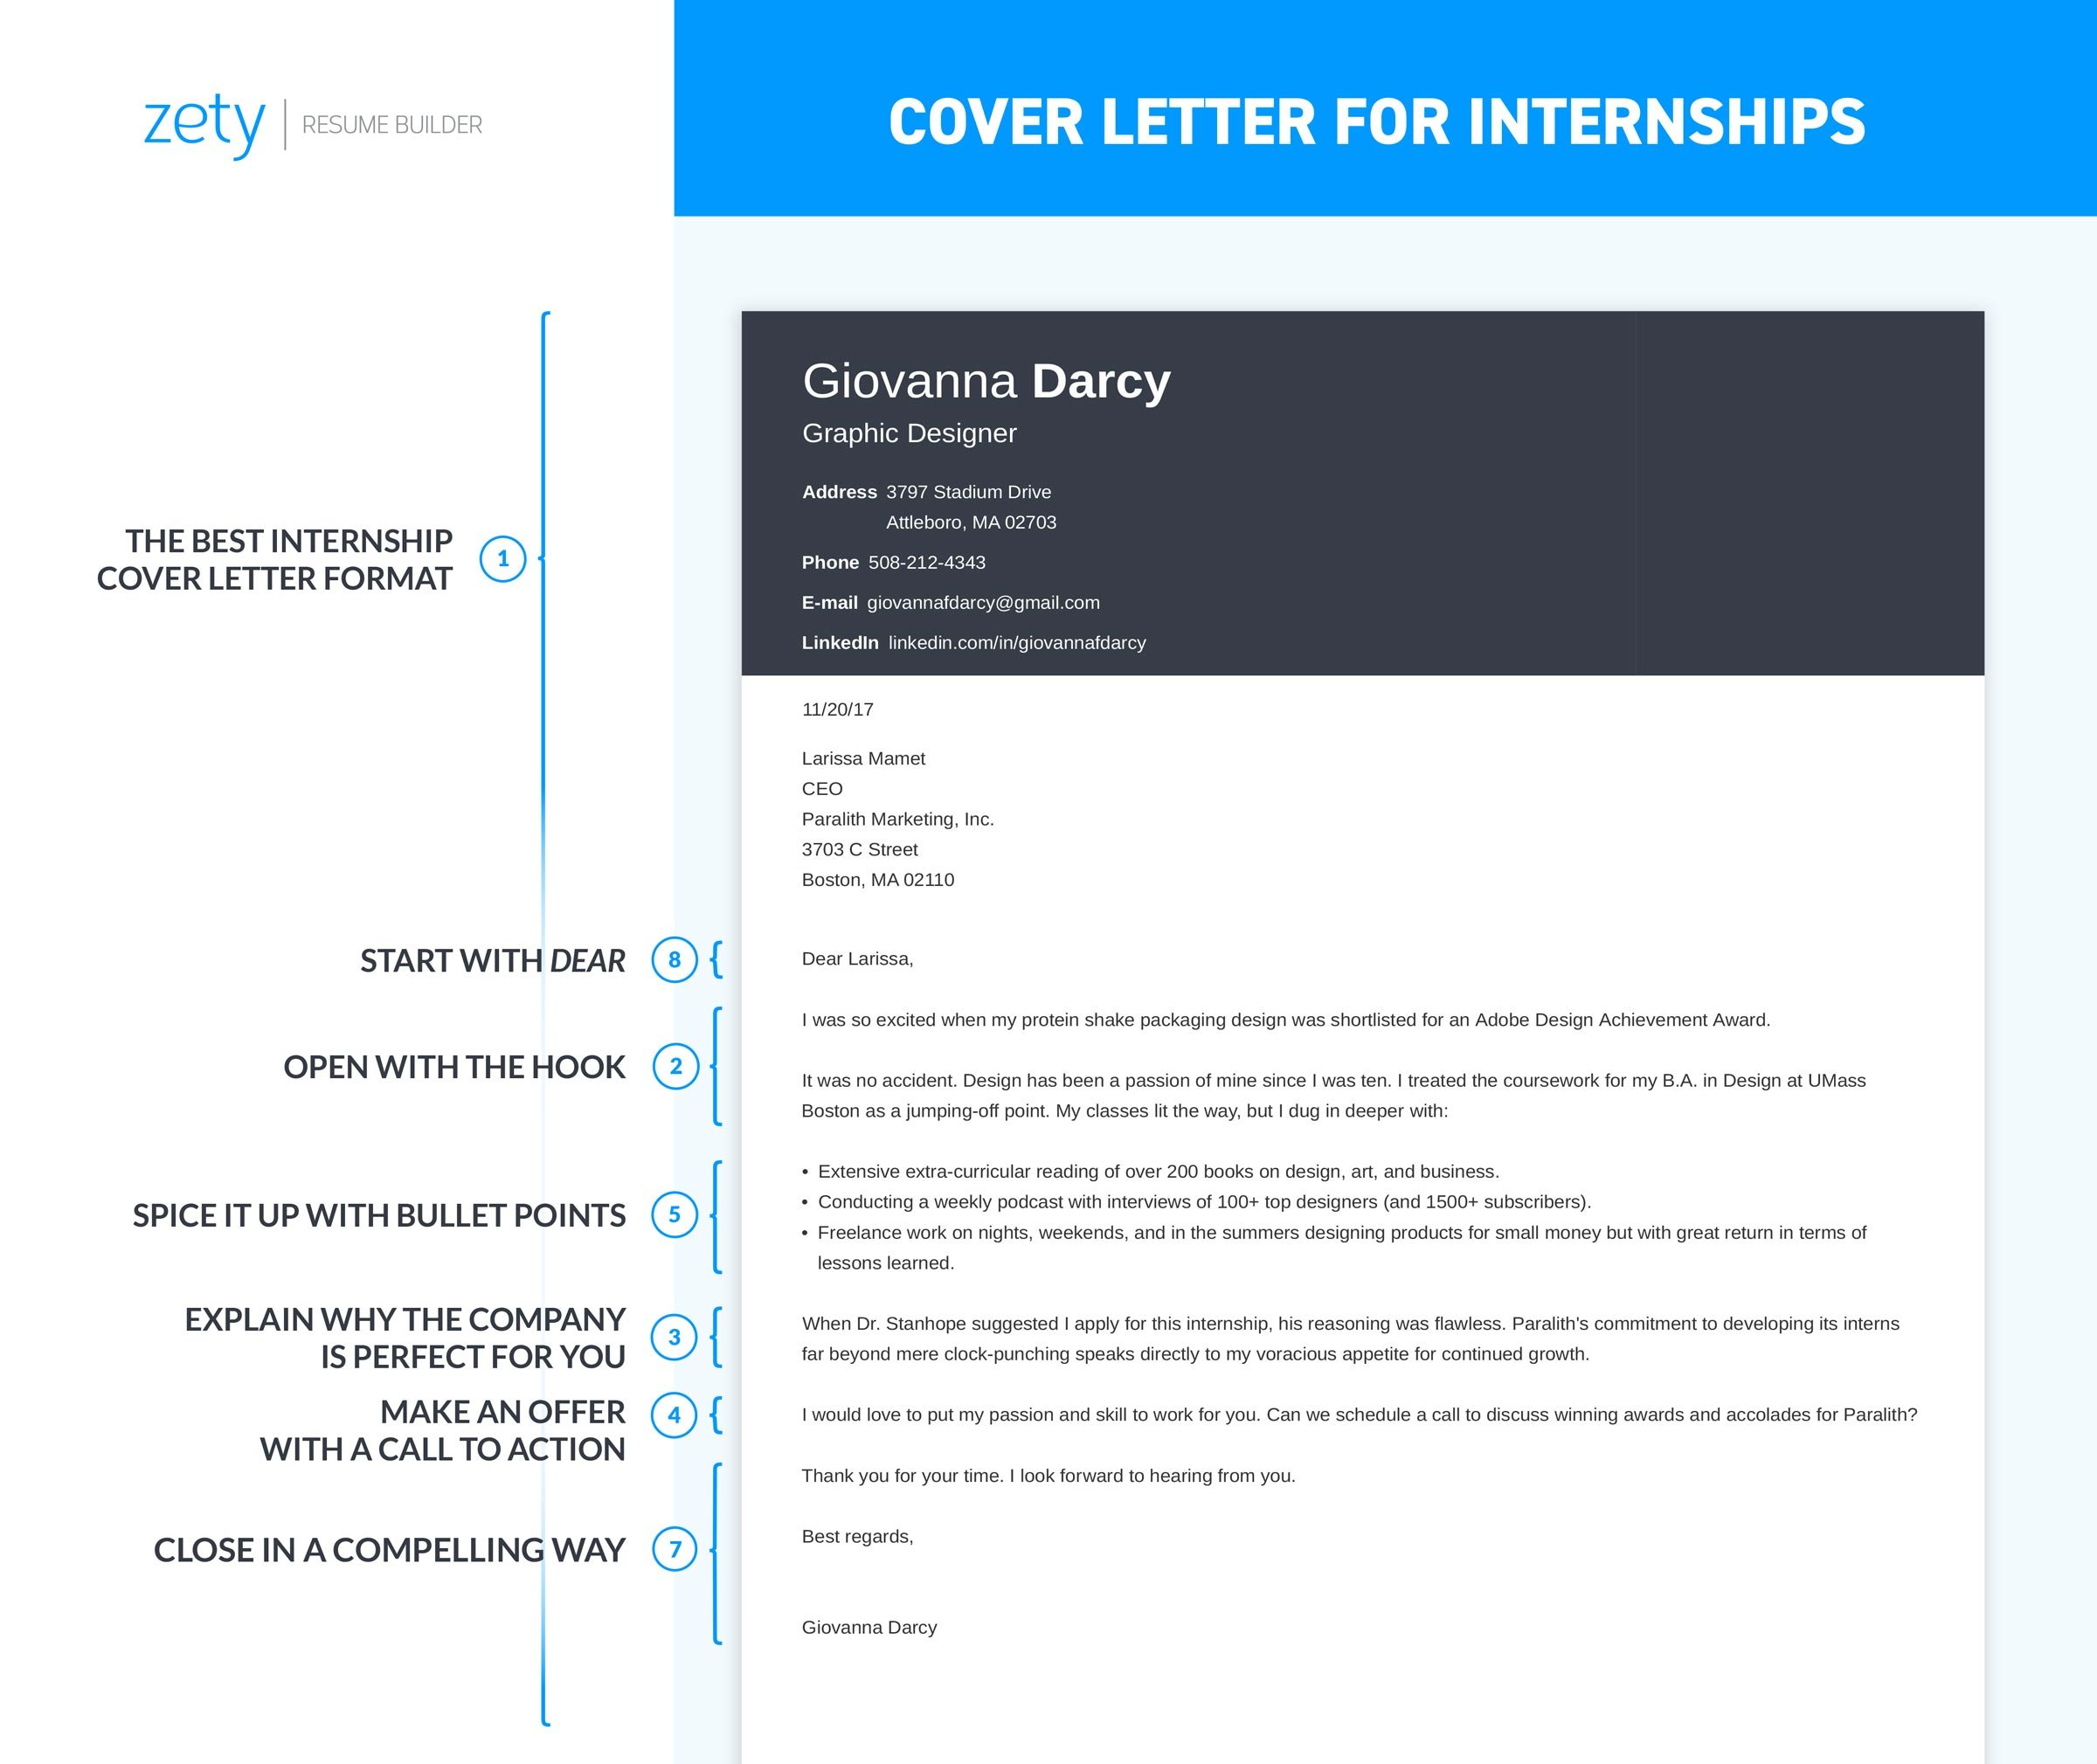 How to write a cover letter for an internship 20 examples for What to add in a cover letter